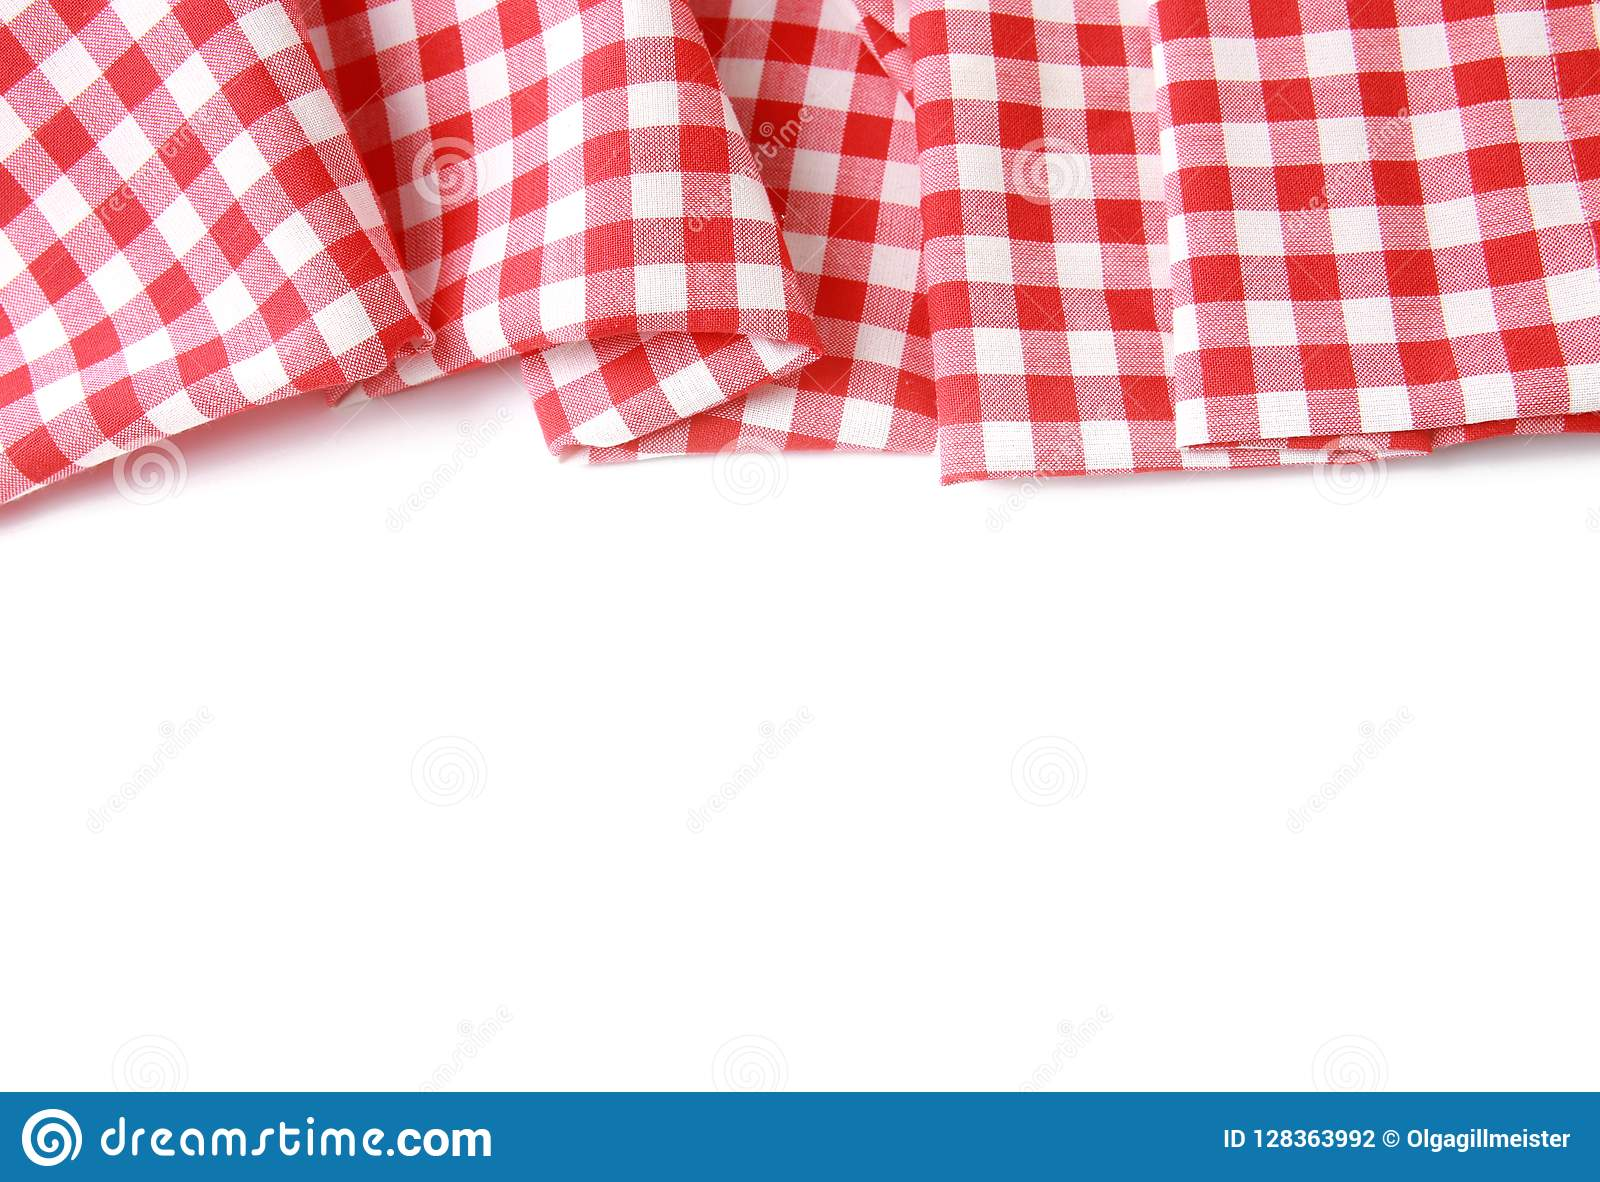 Red Picnic Checkered Cloth Border Isolated. Stock Photo ...